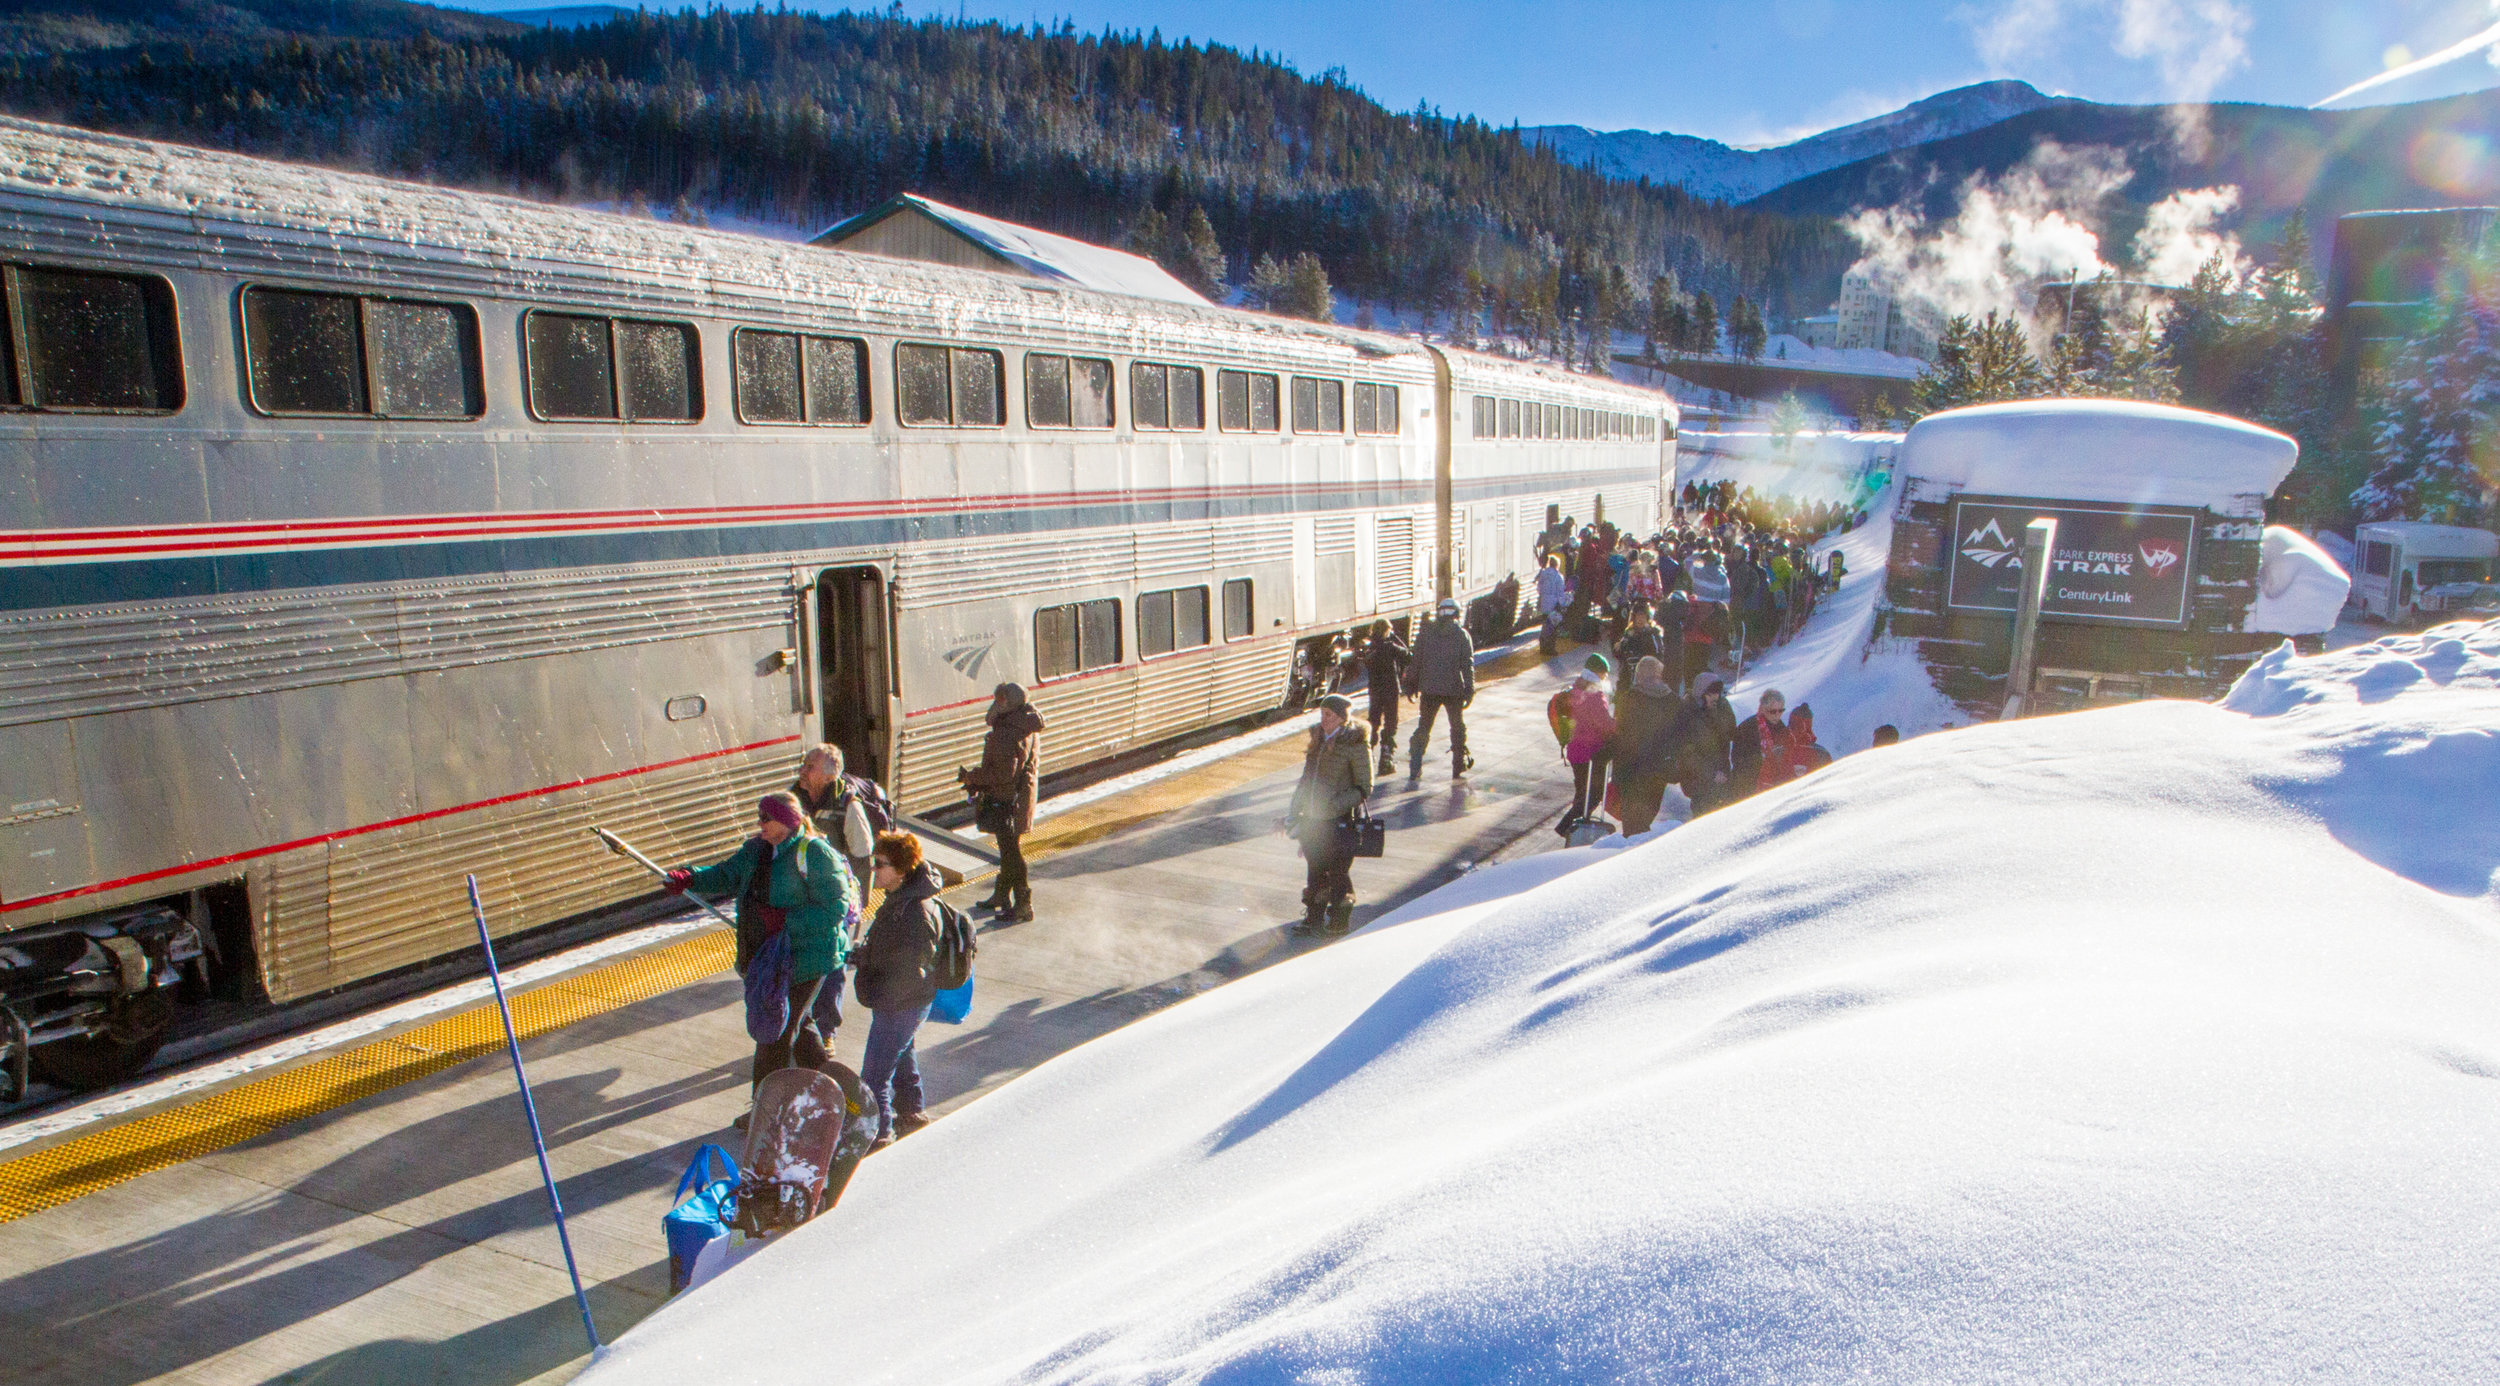 The Winter Park Express arrives at the Winter Park base area  Photo by Charles Stemen courtesy of Winter Park Resort